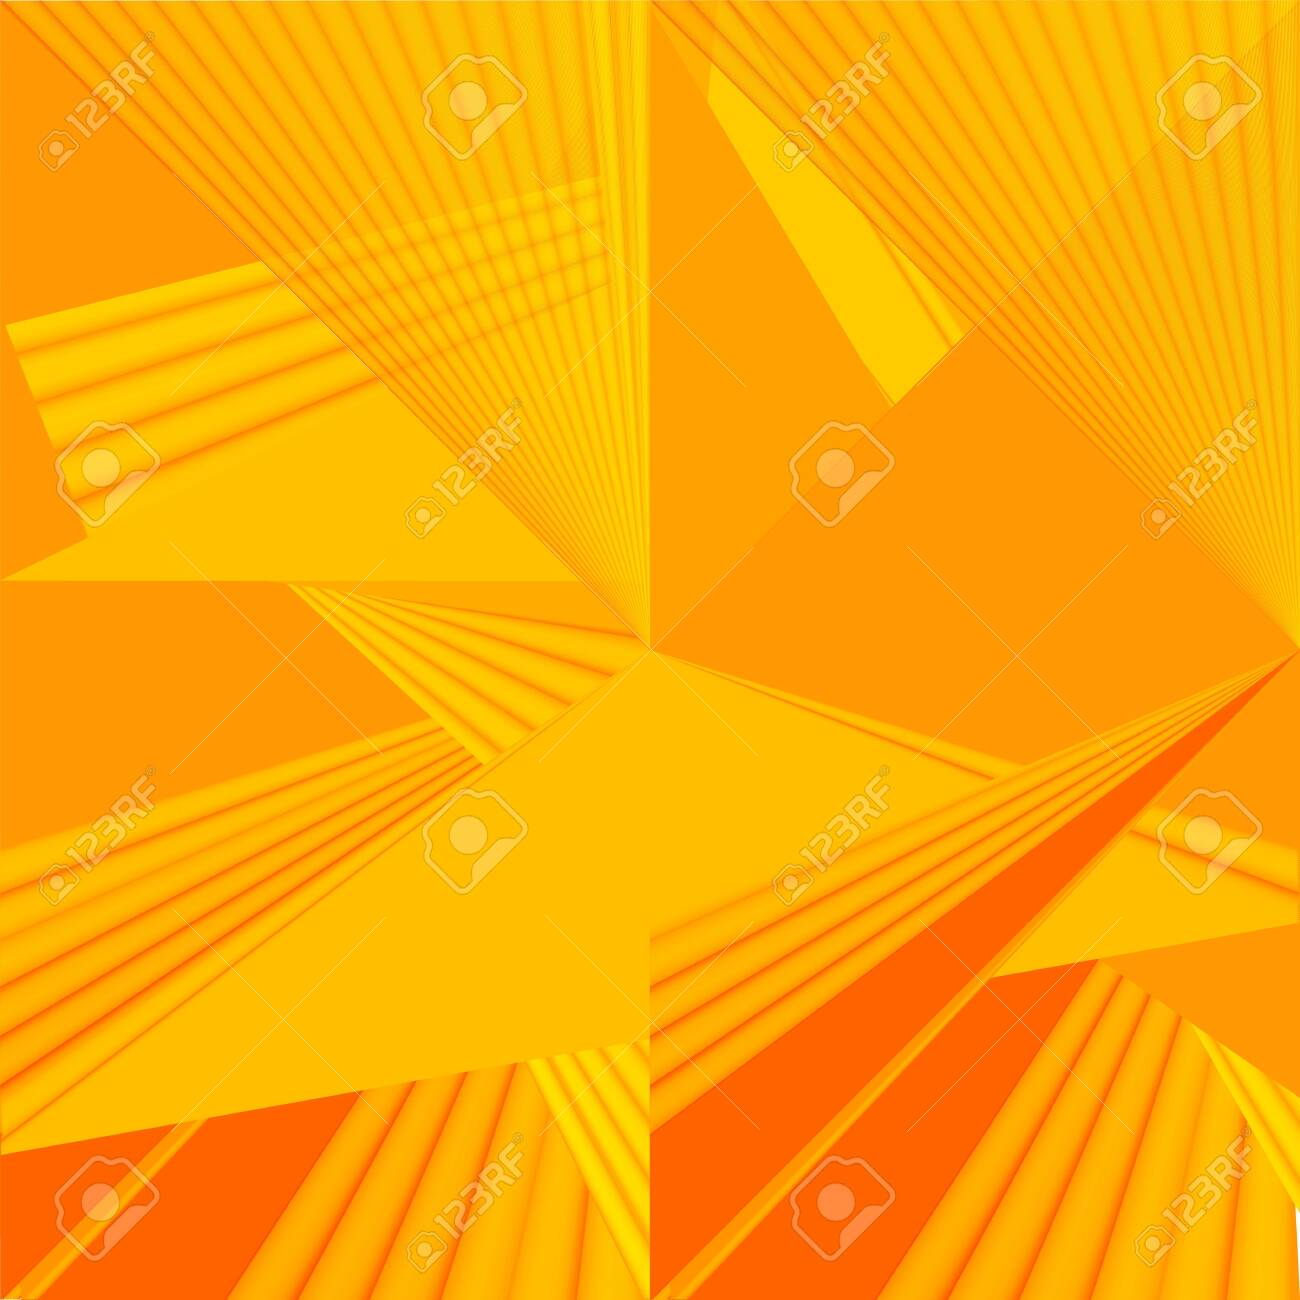 Soft Yellow Orange Color Toned 3d Minimal Concept Abstract